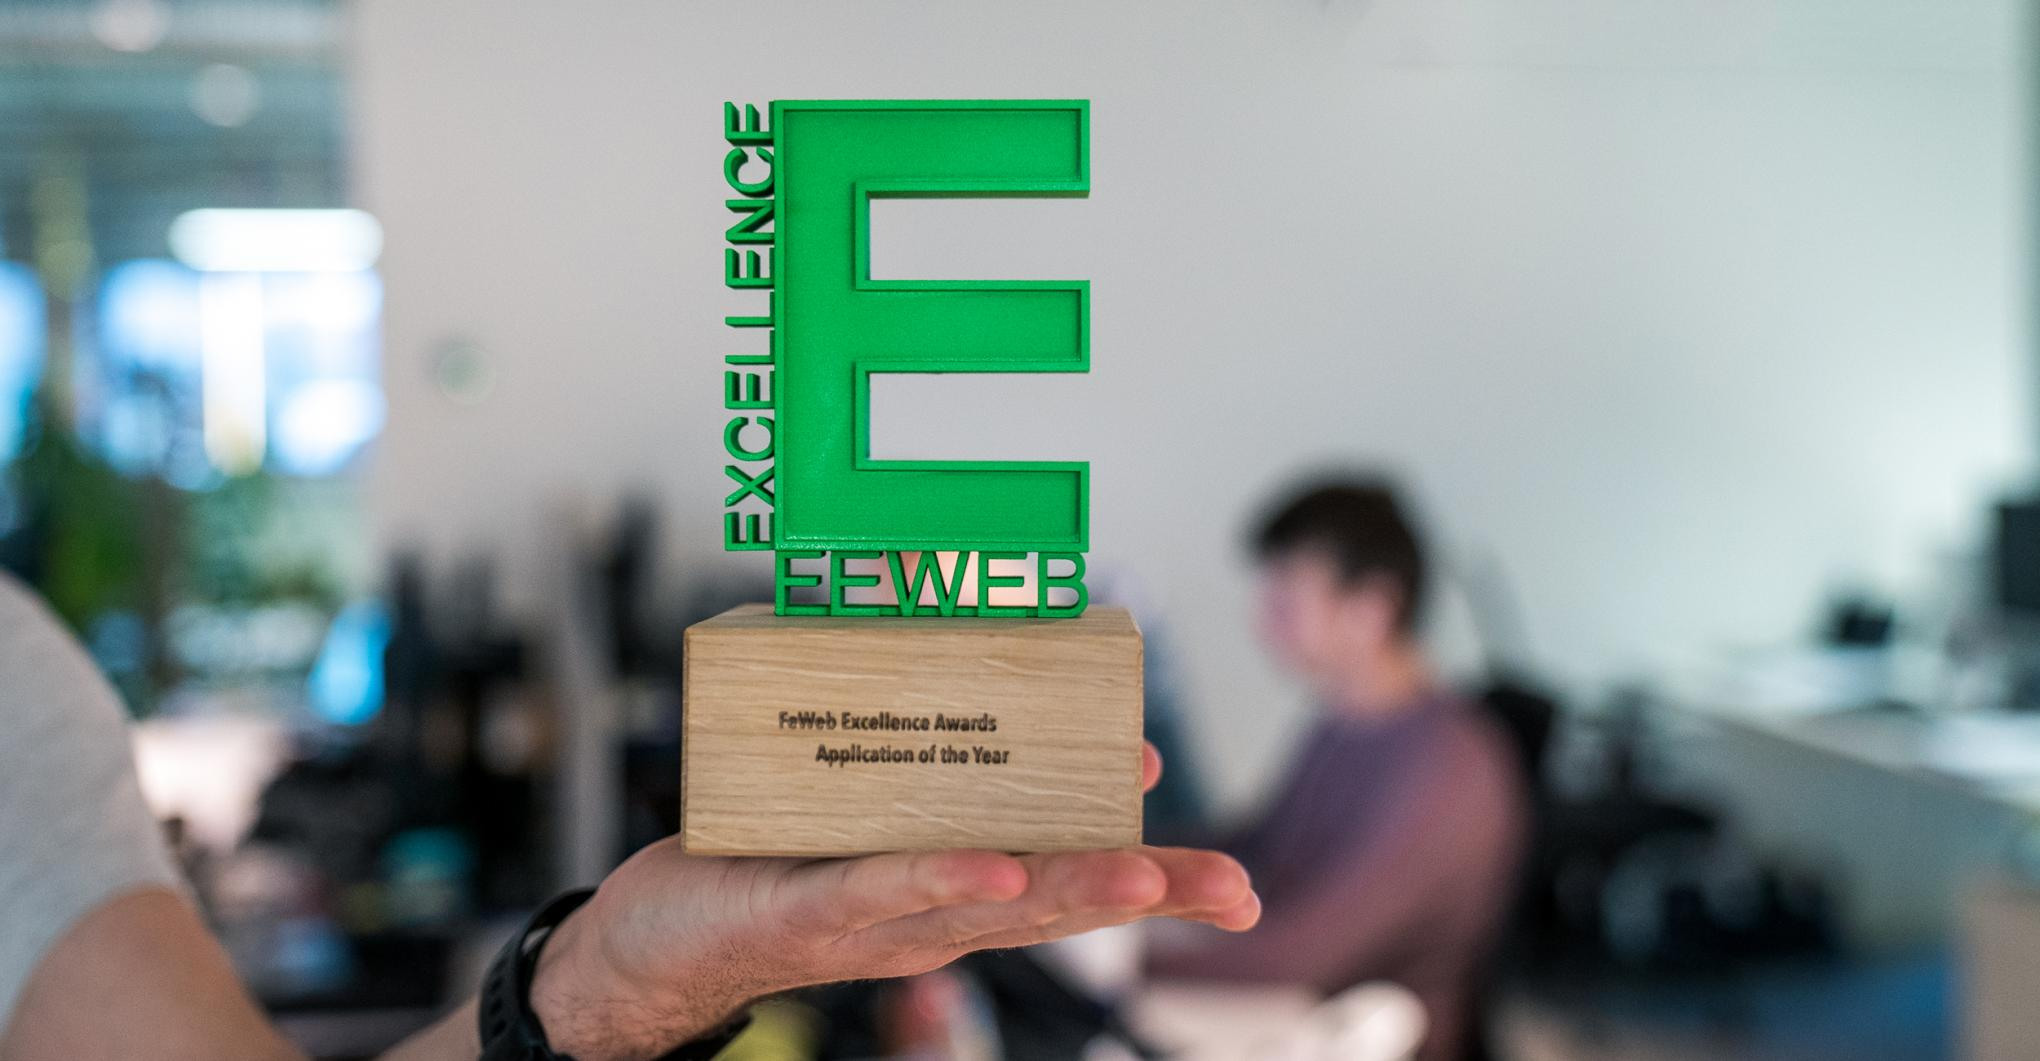 Intracto won de FeWeb Excellence Award voor Application of the Year